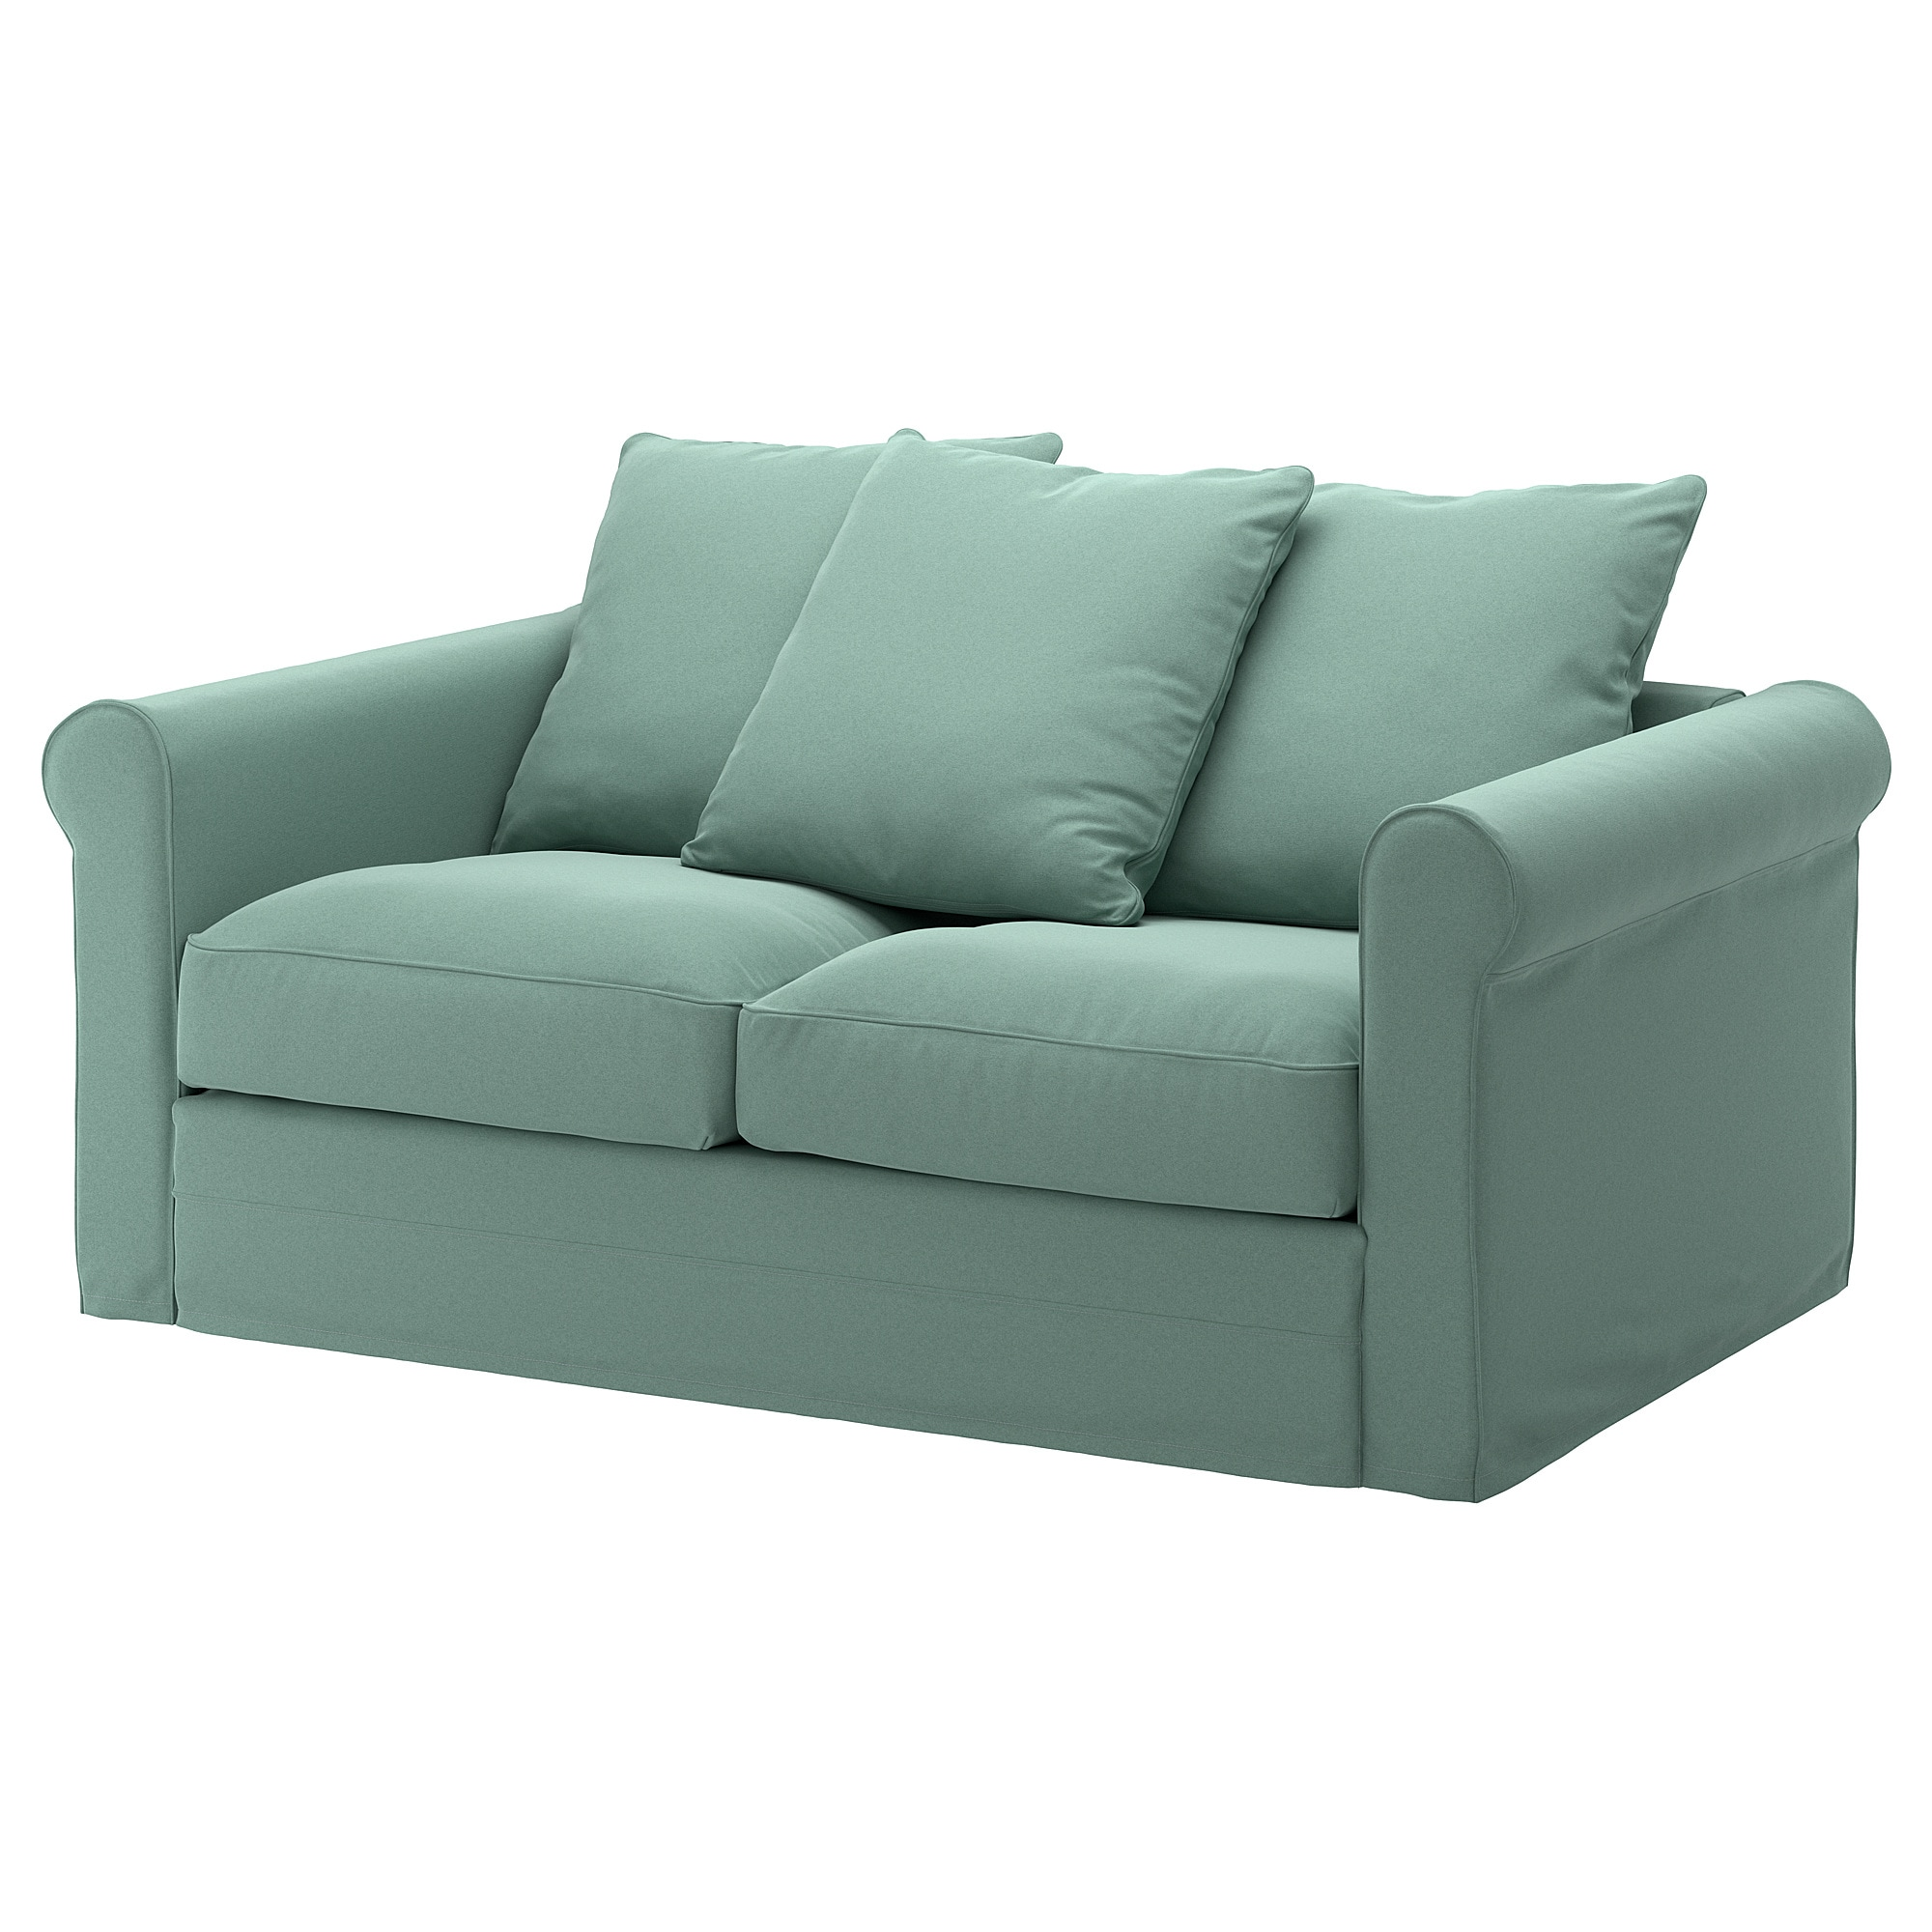 sleep chain casamode name plus convertible gray loveseat id index category by page futon product